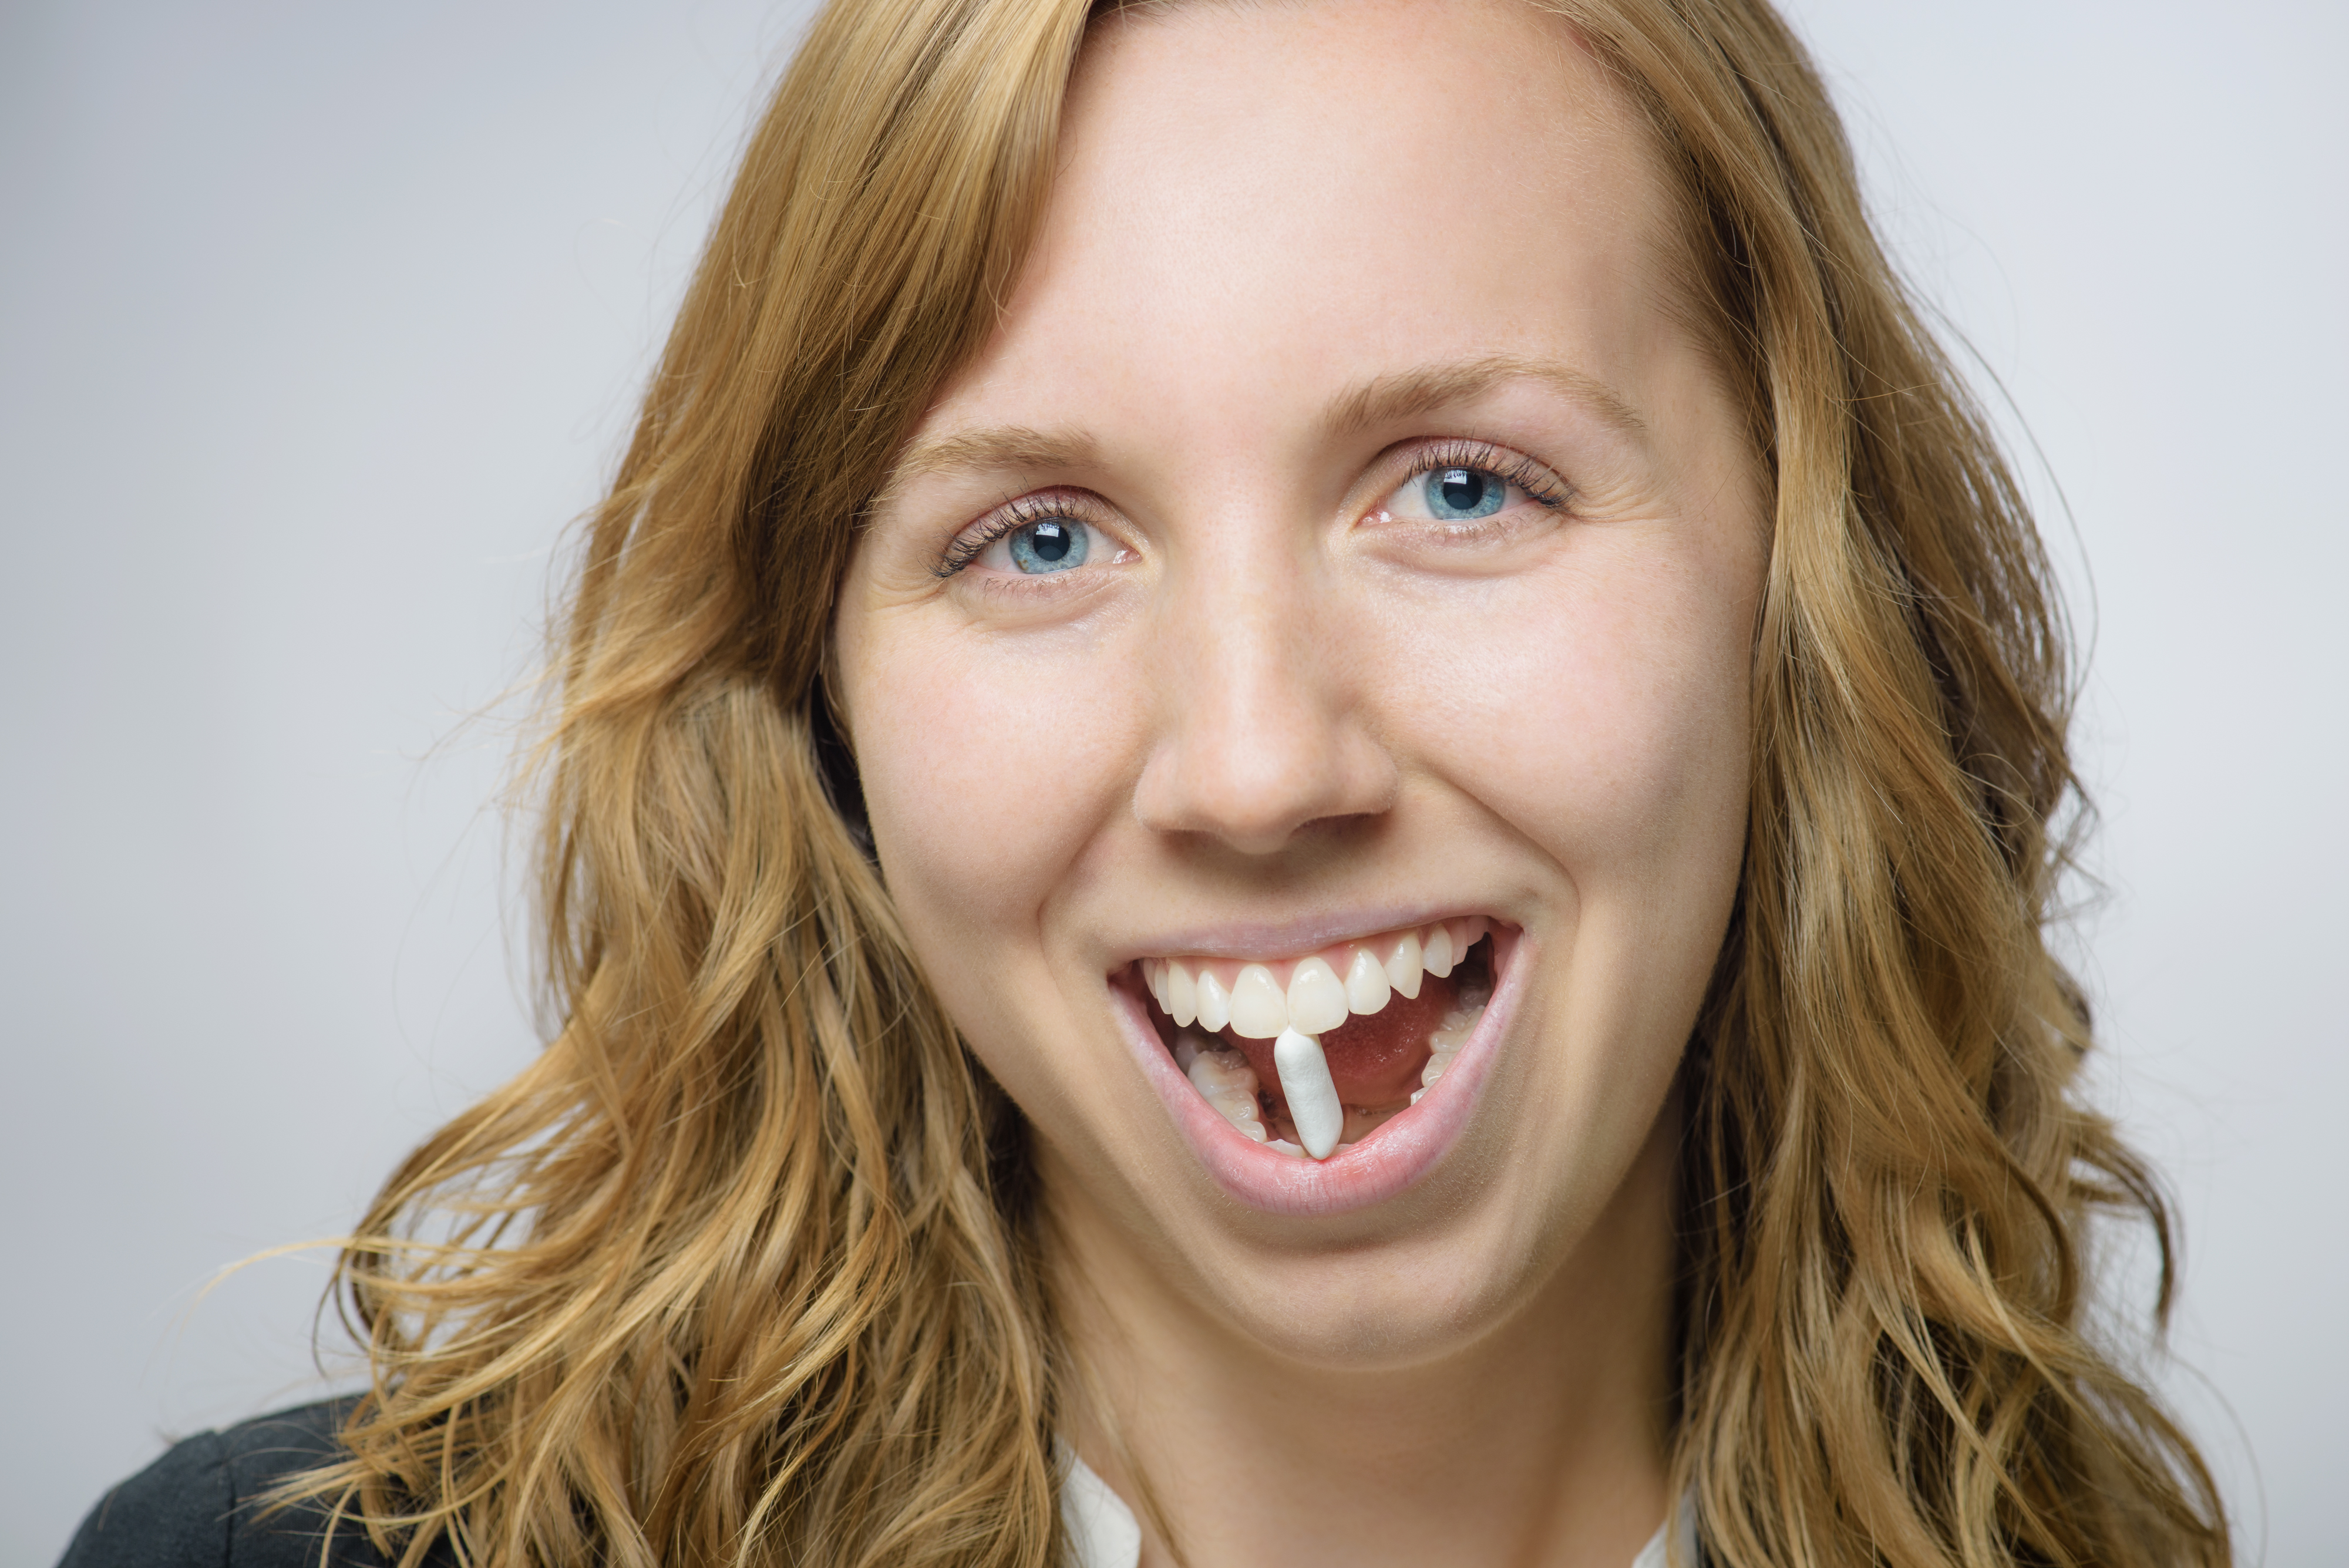 Woman smiling playfully holding a piece of gum between her teeth.